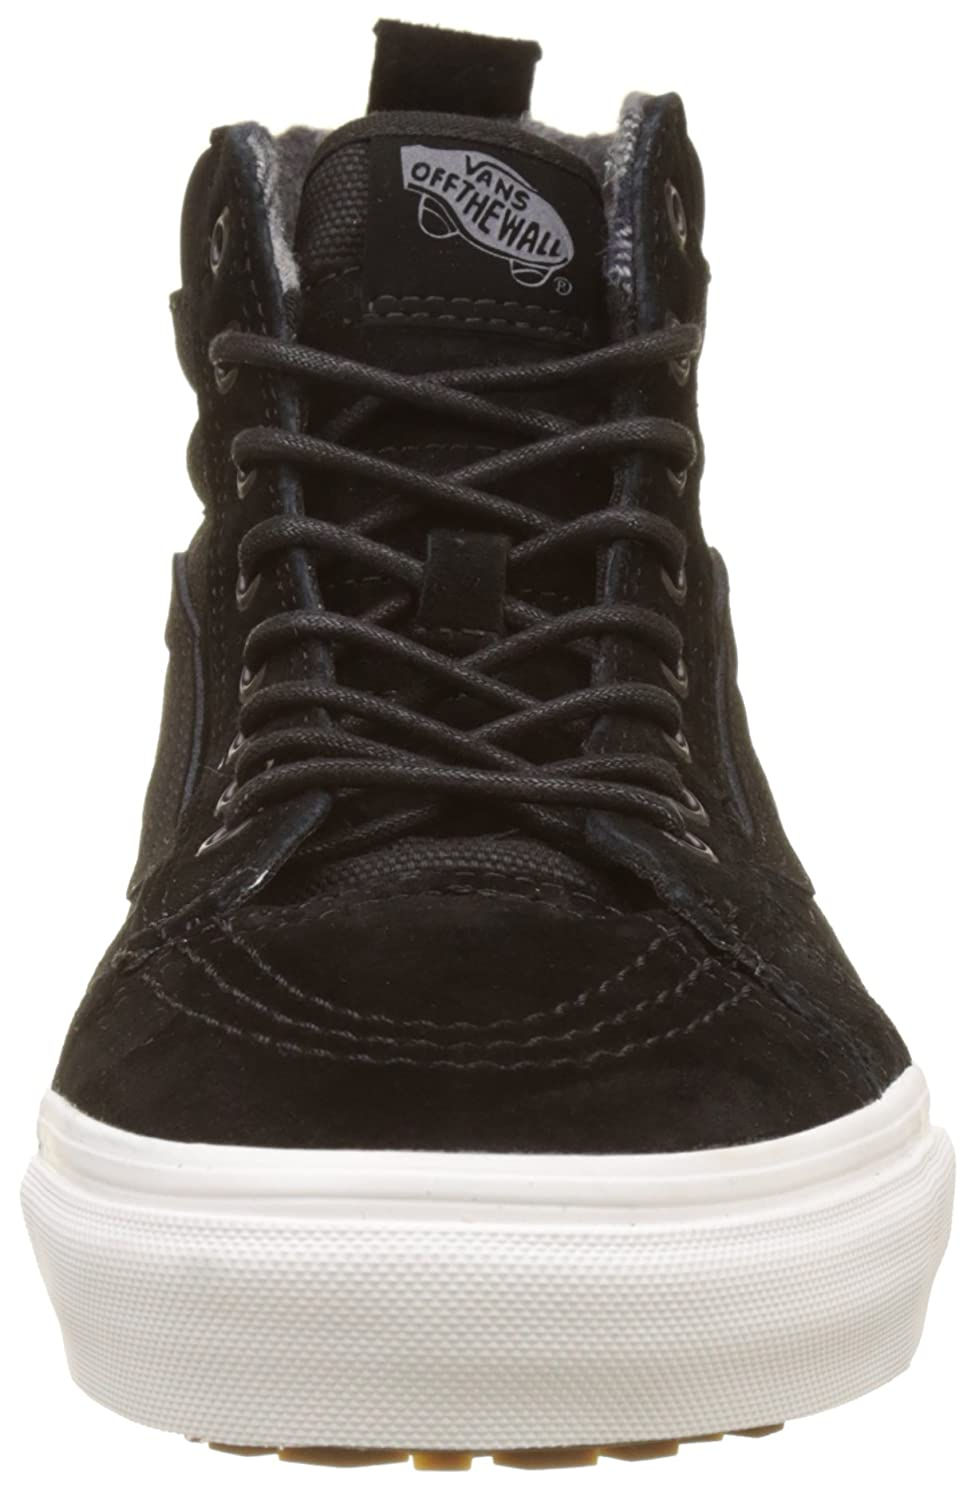 Vans Sk8-Hi Unisex Casual High-Top Skate Shoes, Comfortable and Durable in Signature Waffle Rubber Sole B01N7HHQ9L 10 D(M) US|Black